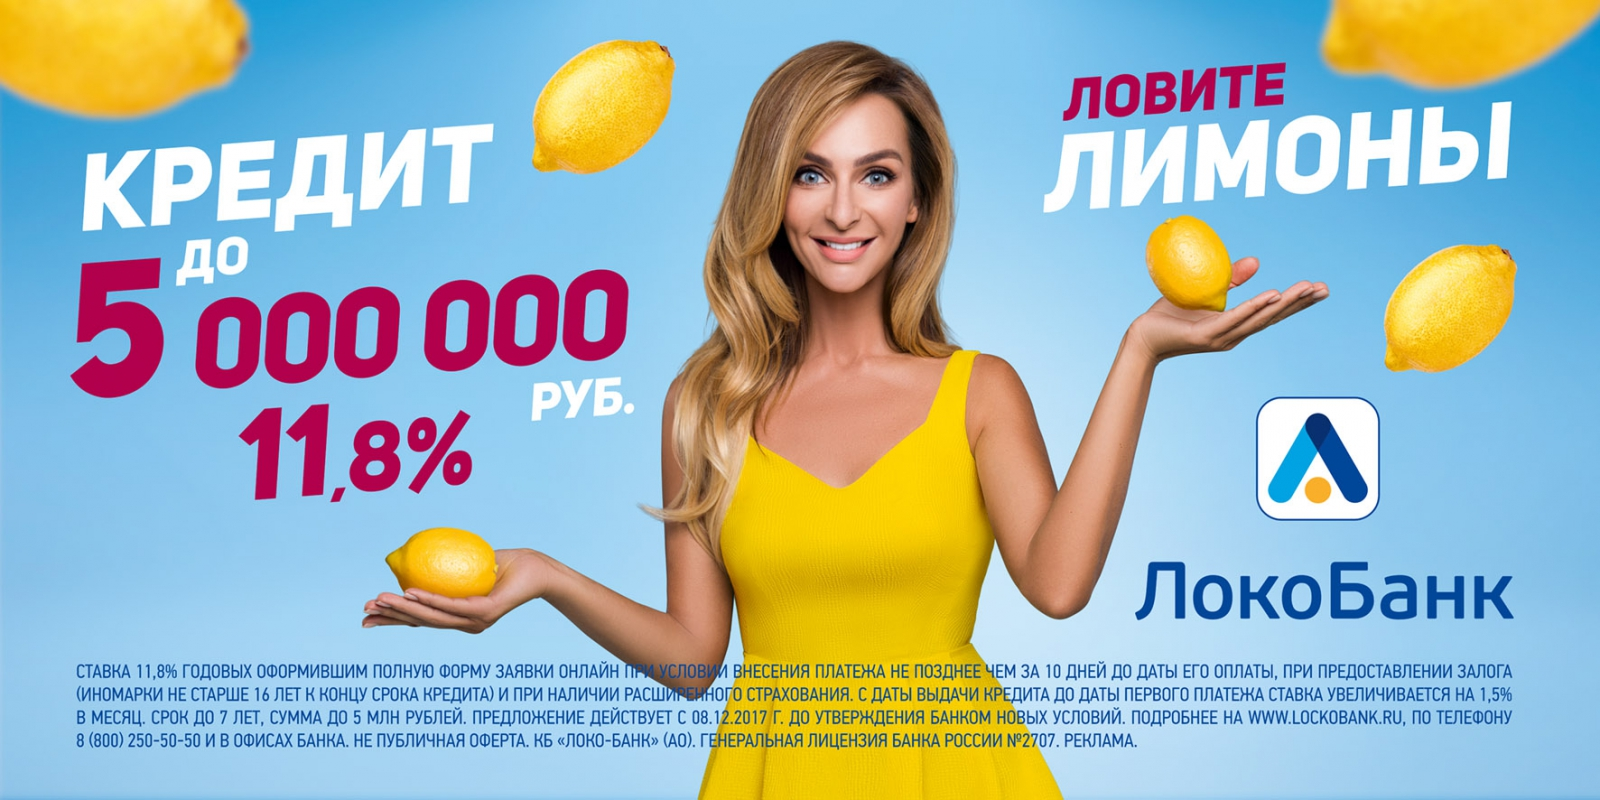 реклама про кредит does checking your credit score on credit karma bring it down